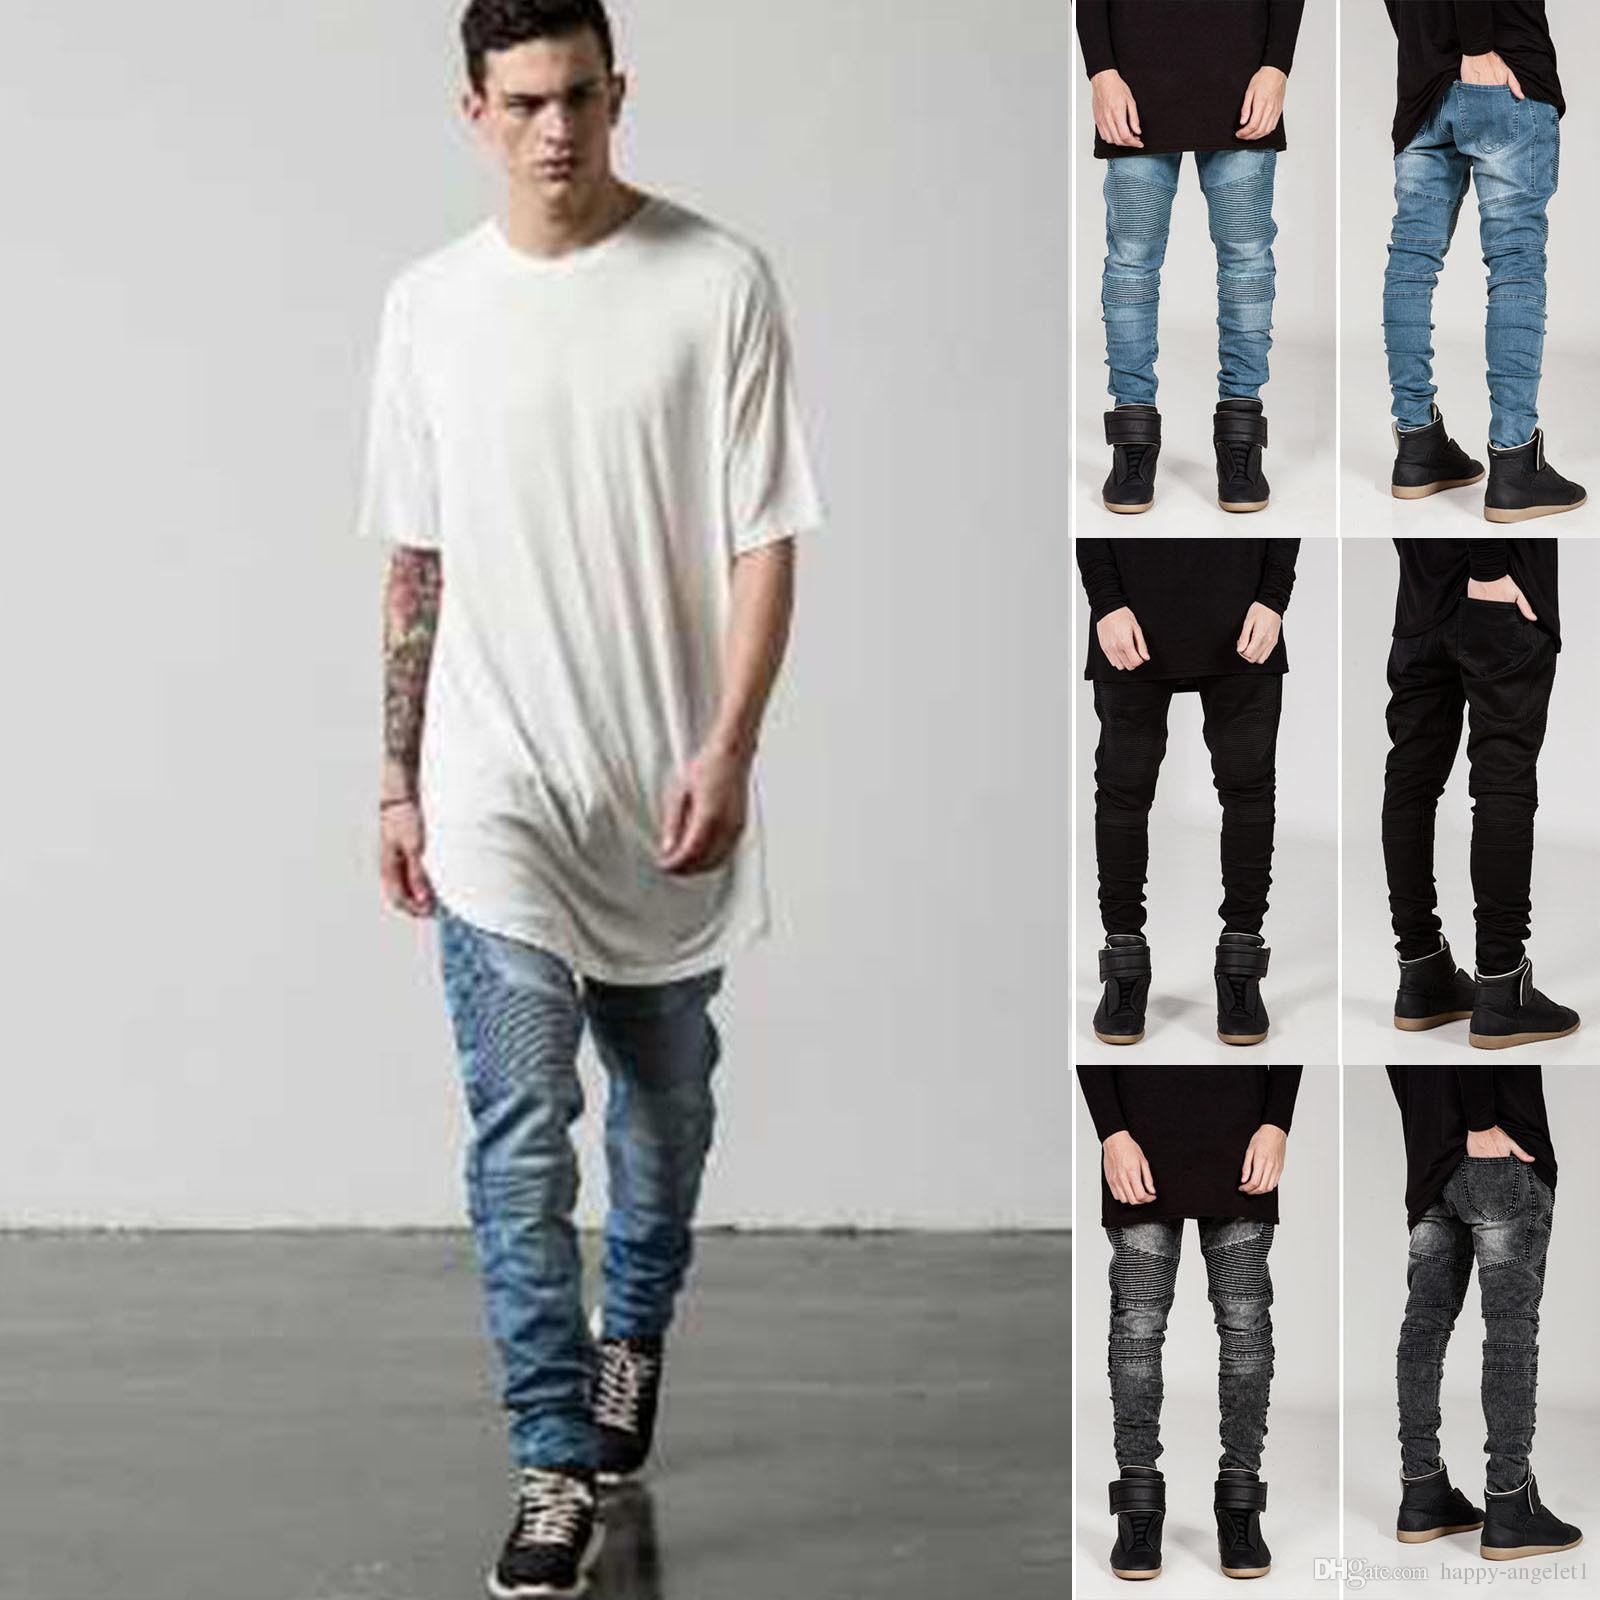 Where to Buy New Style Mens Jeans Pant Online? Where Can I Buy New ...